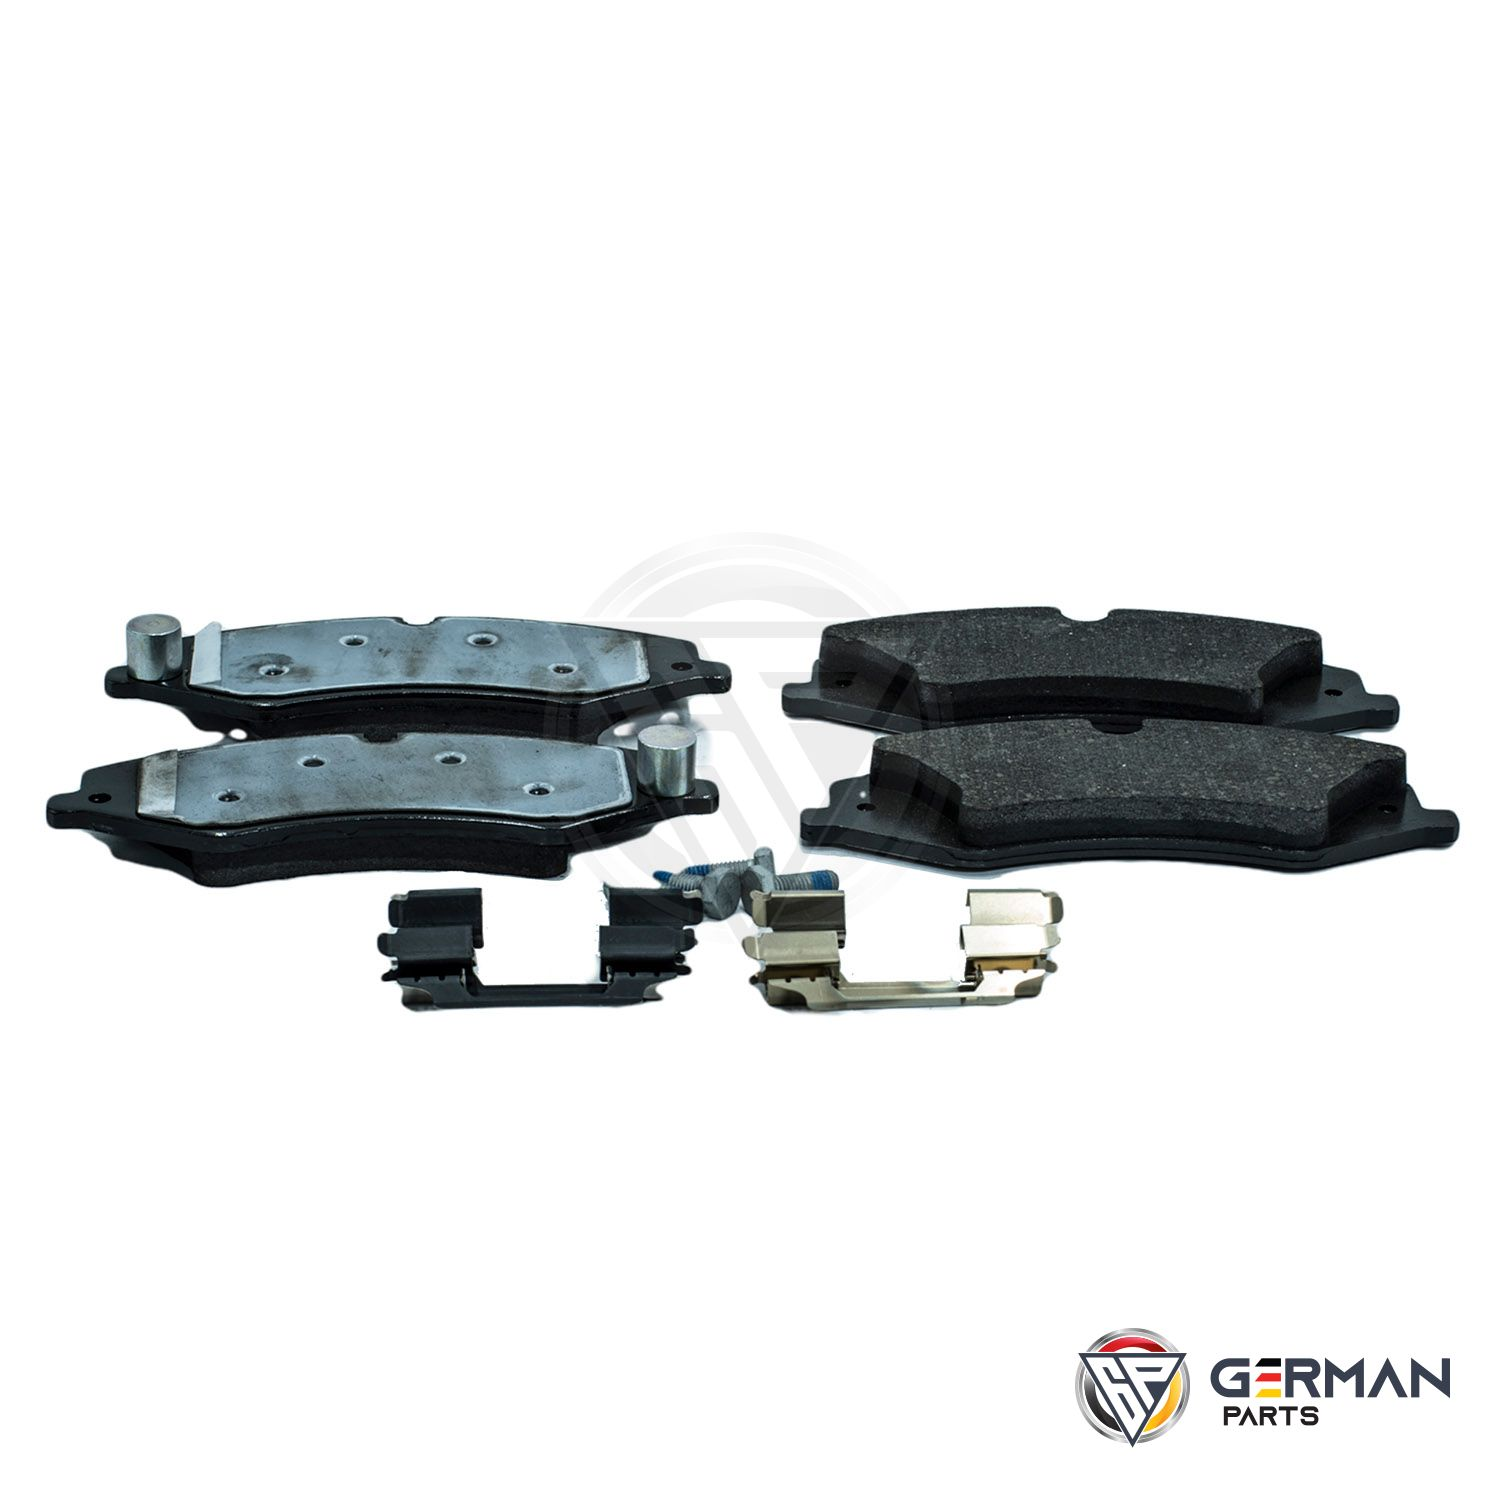 Buy Land Rover Front Brake Pad Set LR051626 - German Parts